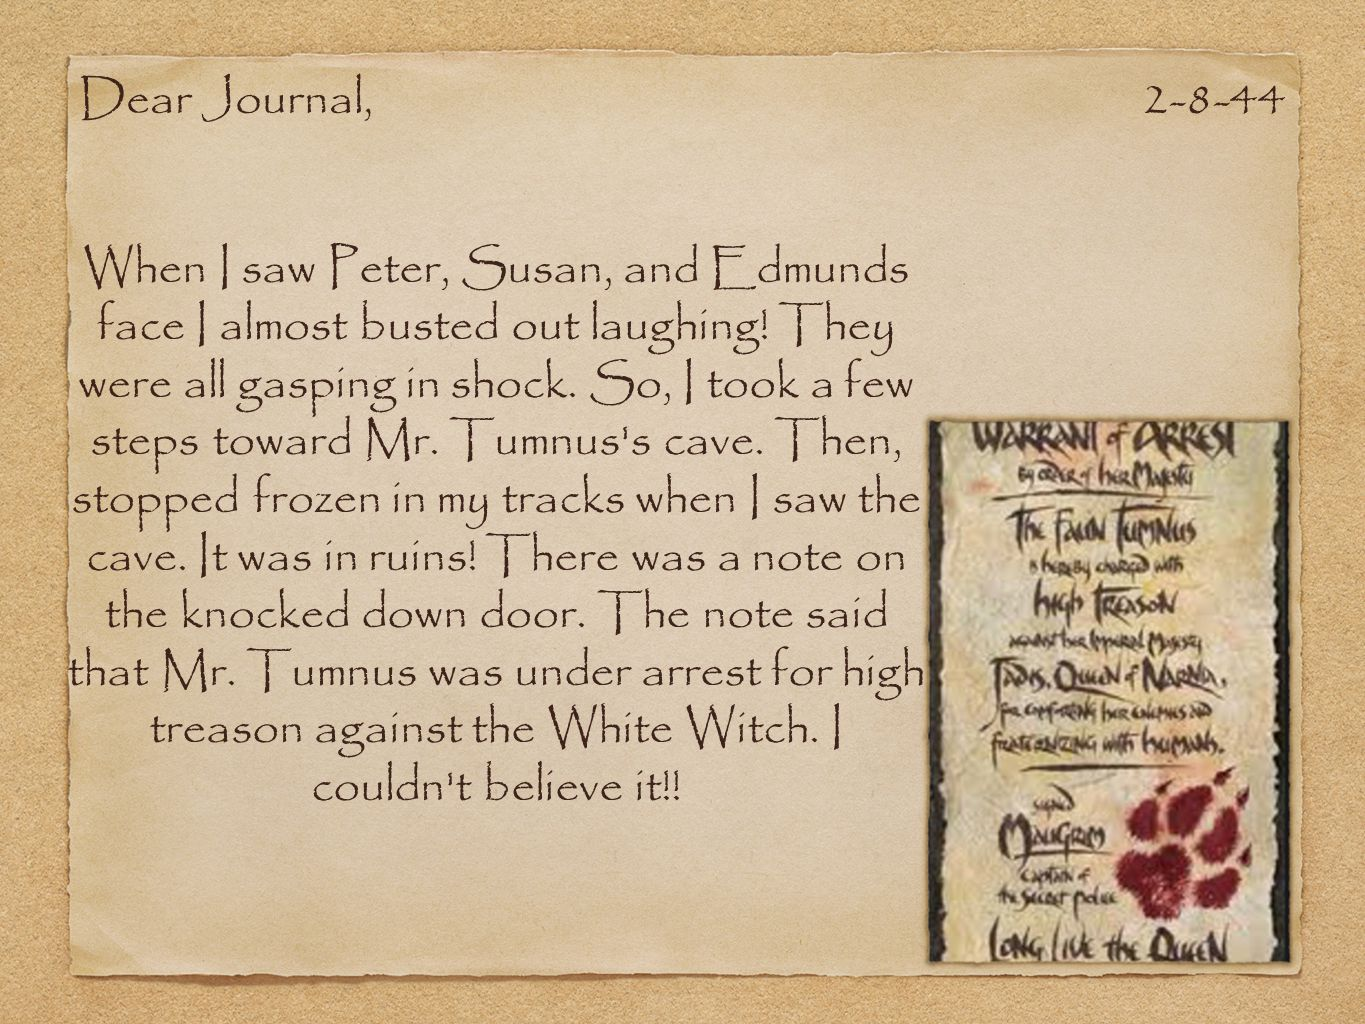 Dear Journal, 2-8-44.